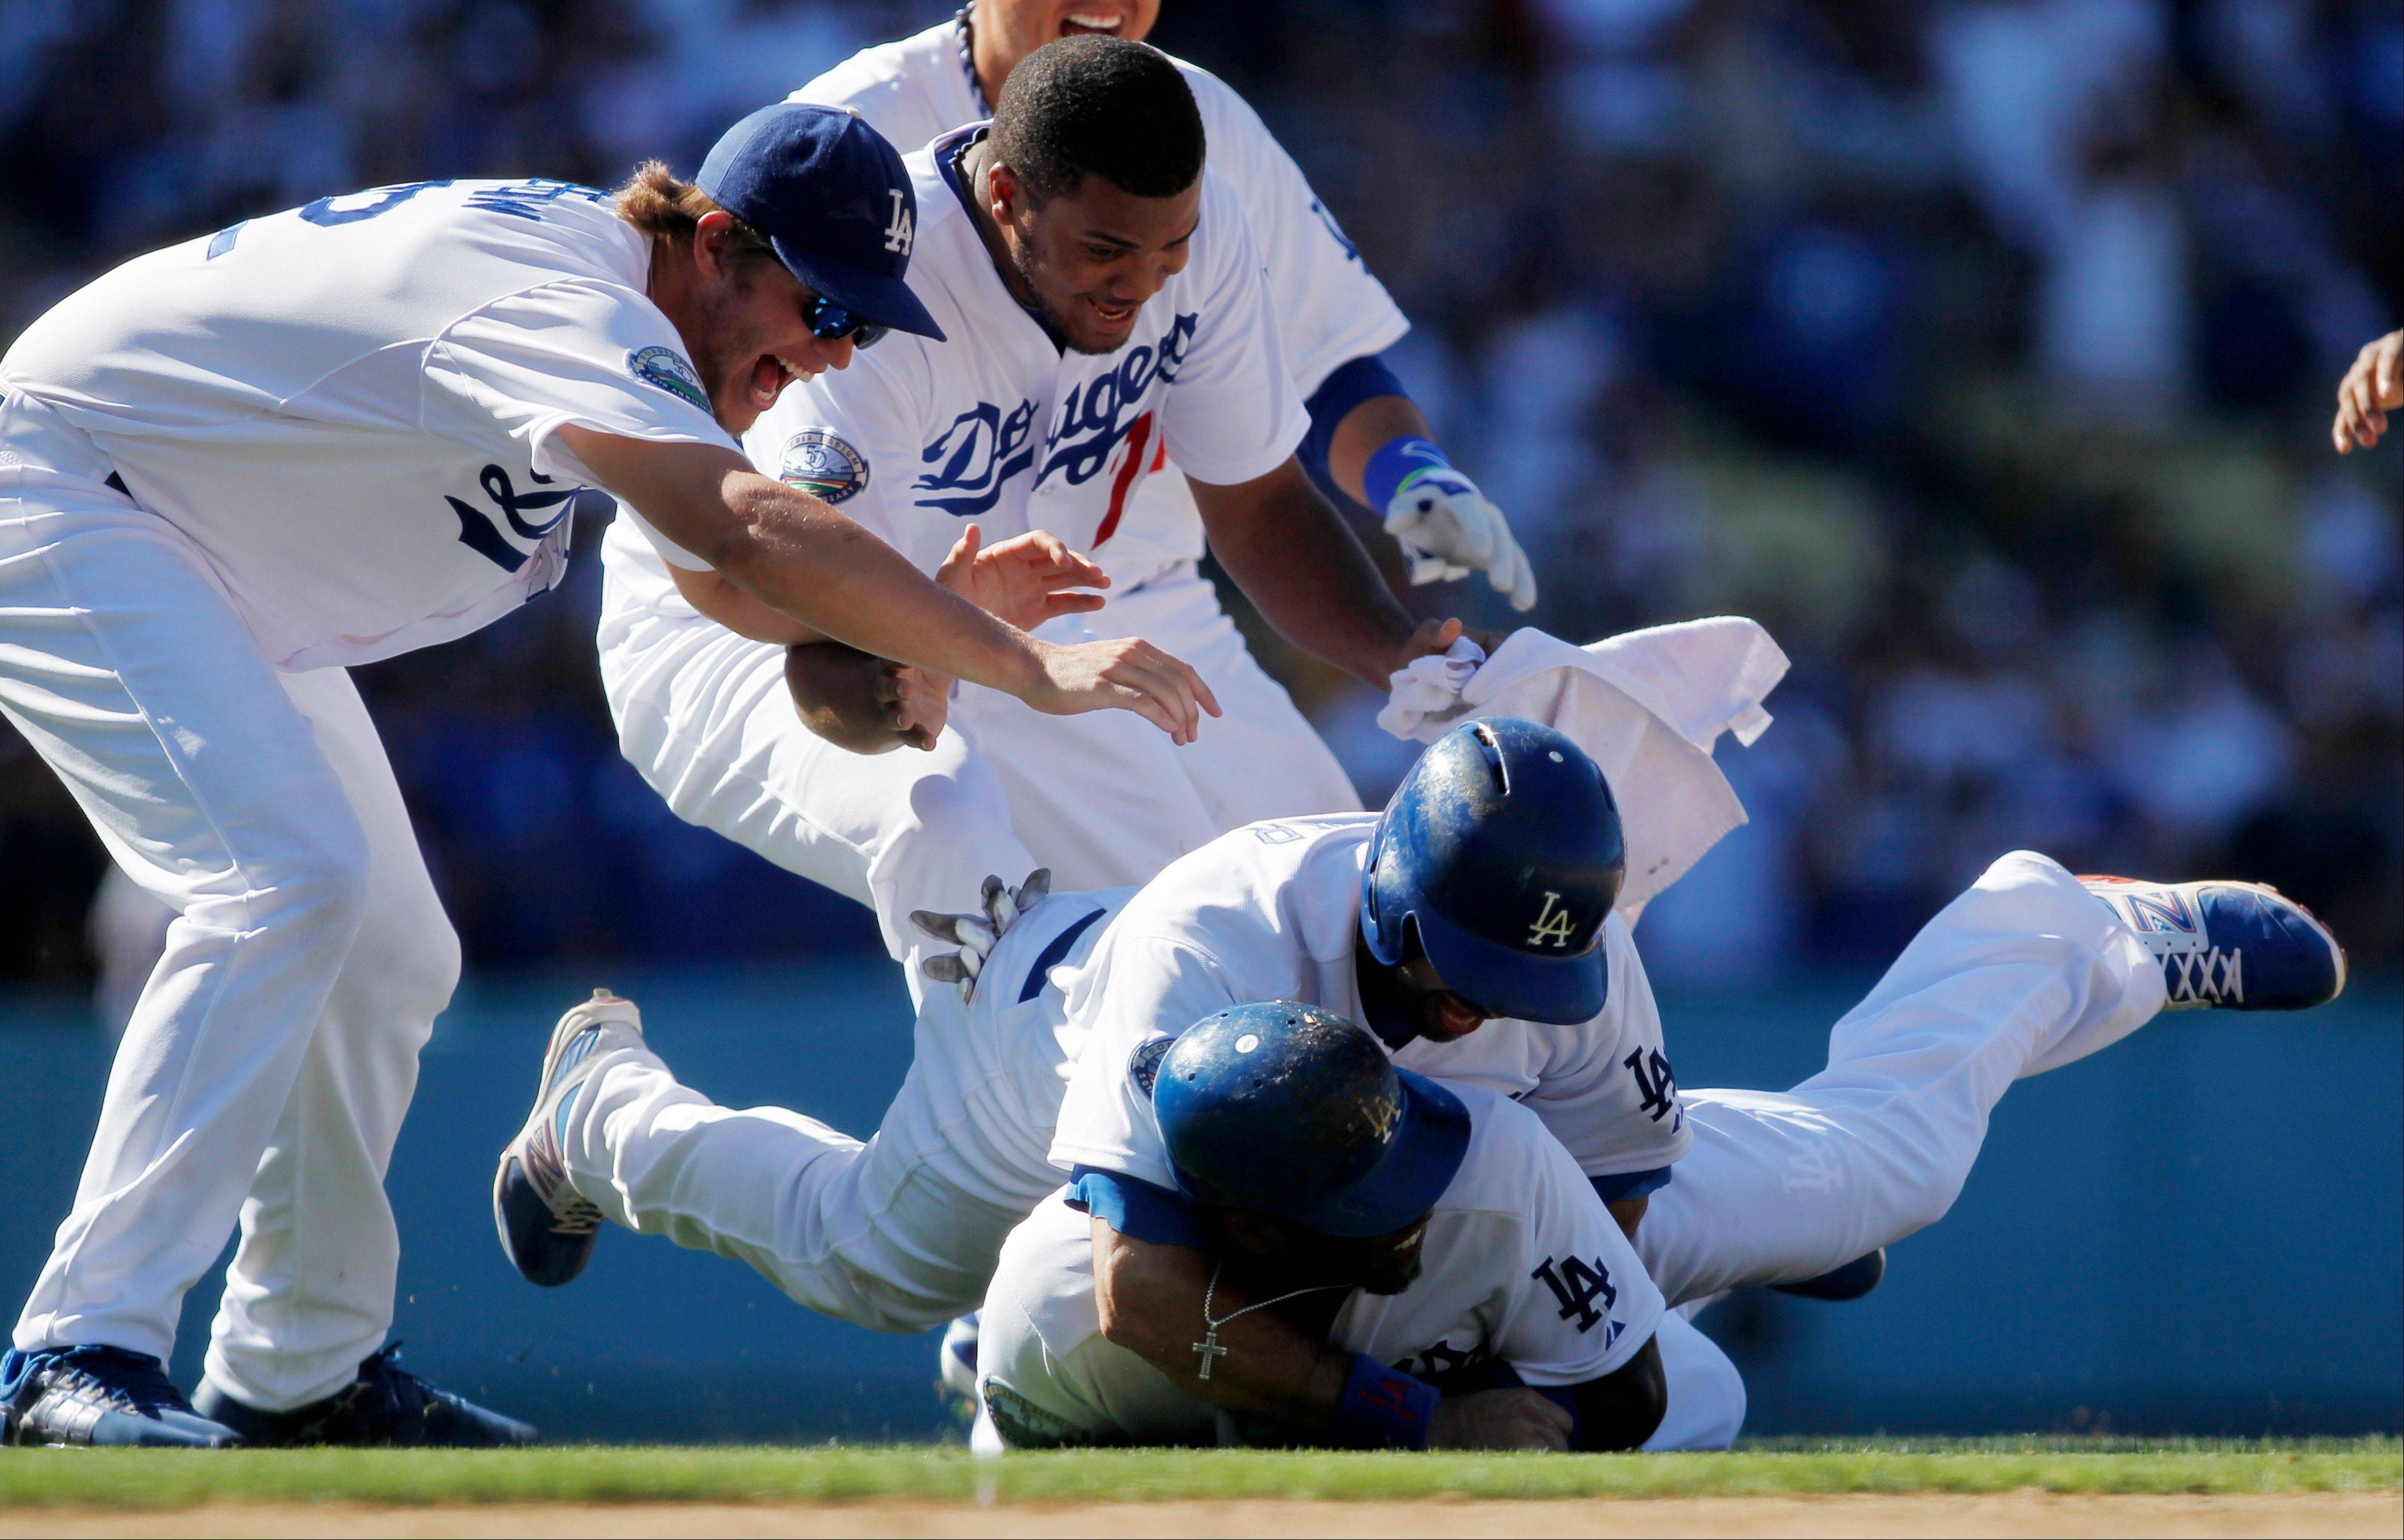 Los Angeles Dodgers slugger Hanley Ramirez, bottom, is mobbed by teammates including, from left to right, Clayton Kershaw, Kenley Jansen and Andre Ethier after he knocked in the game-winning run Sunday against the Cubs at Dodgers Stadium.